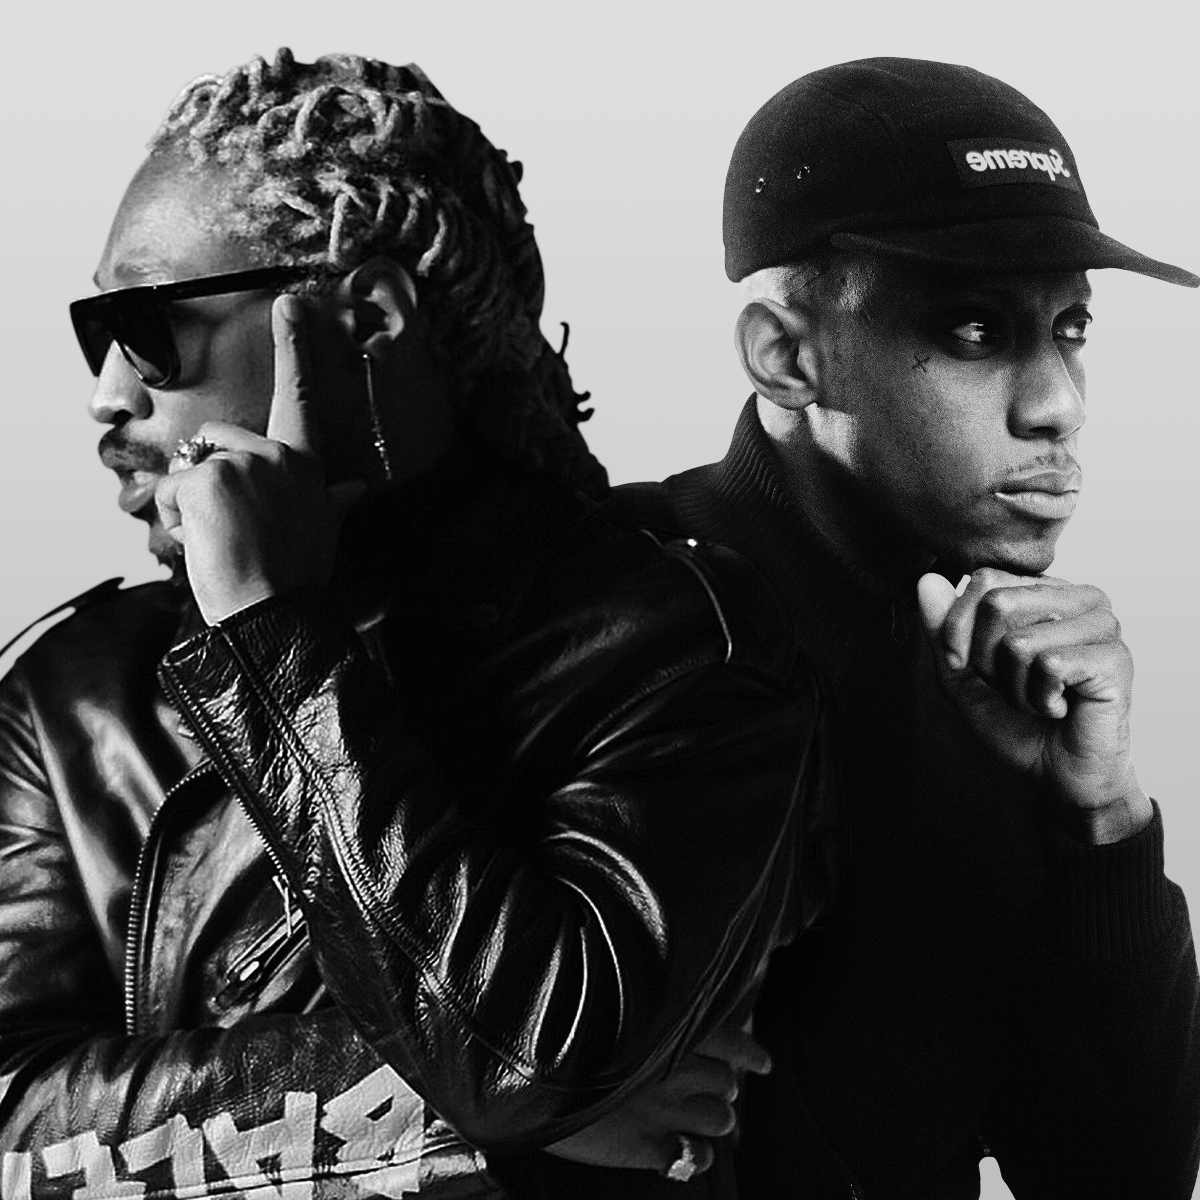 OCTAVIAN COLLABORATES WITH FUTURE ON NEW SINGLE 'RARI (CHAPTER 1)' OUT NOW VIA BLACK BUTTER